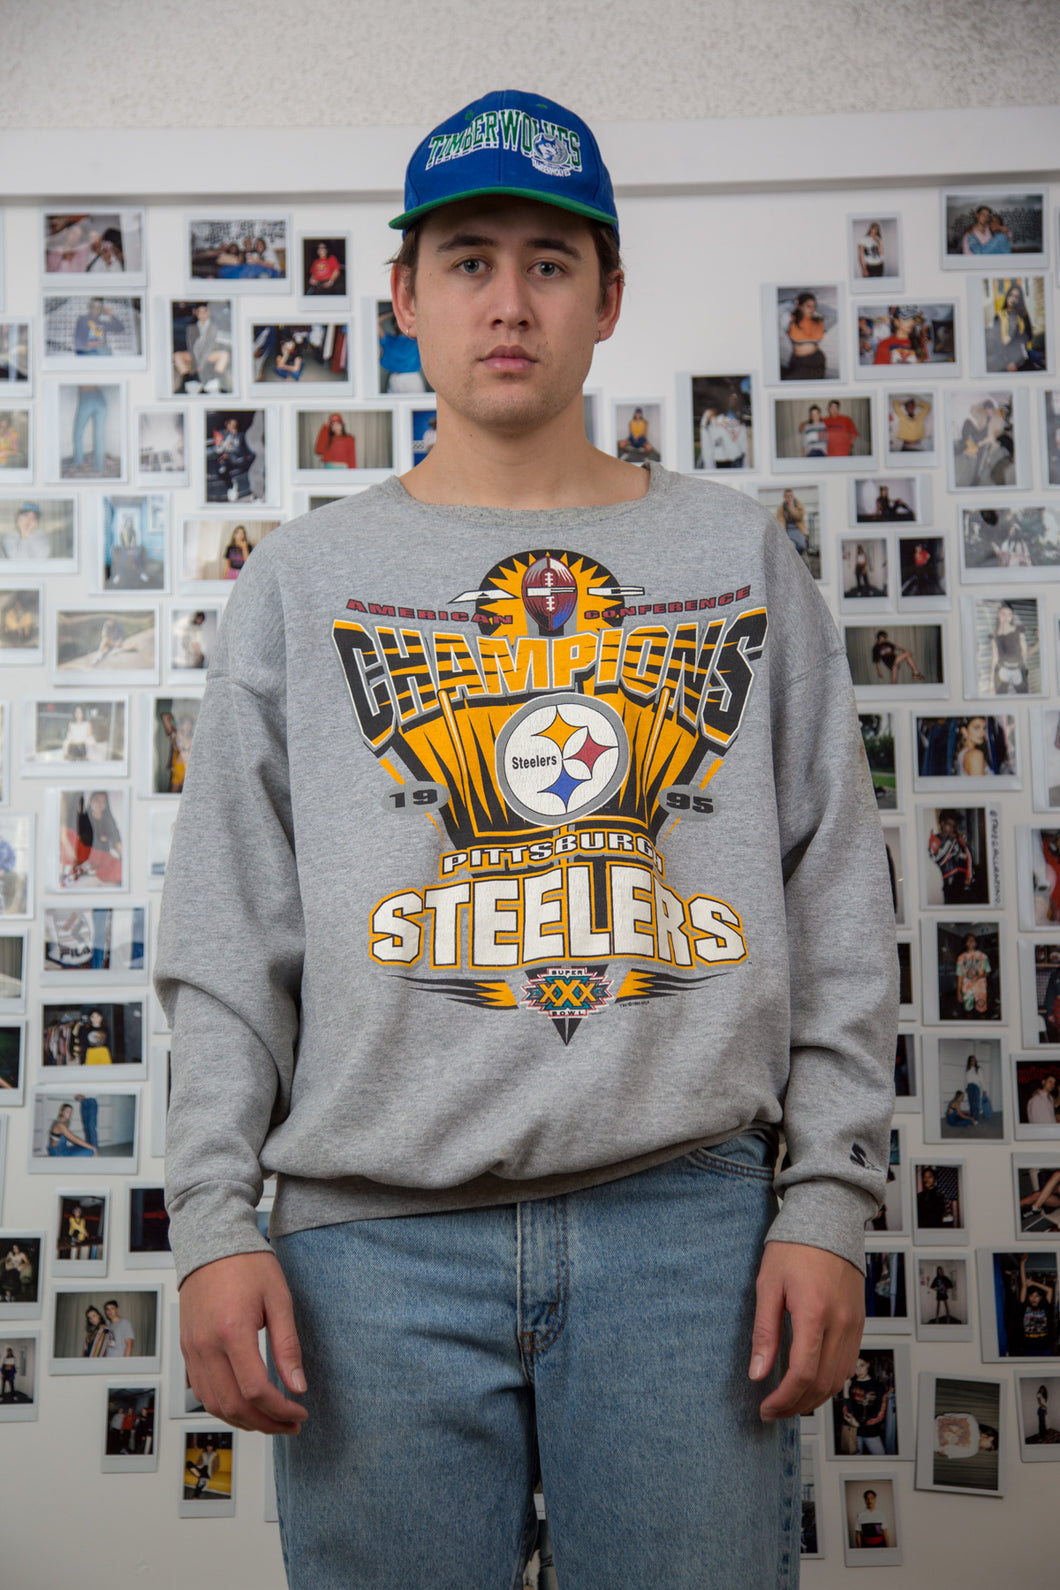 1995 Pittsburgh Steelers Sweater